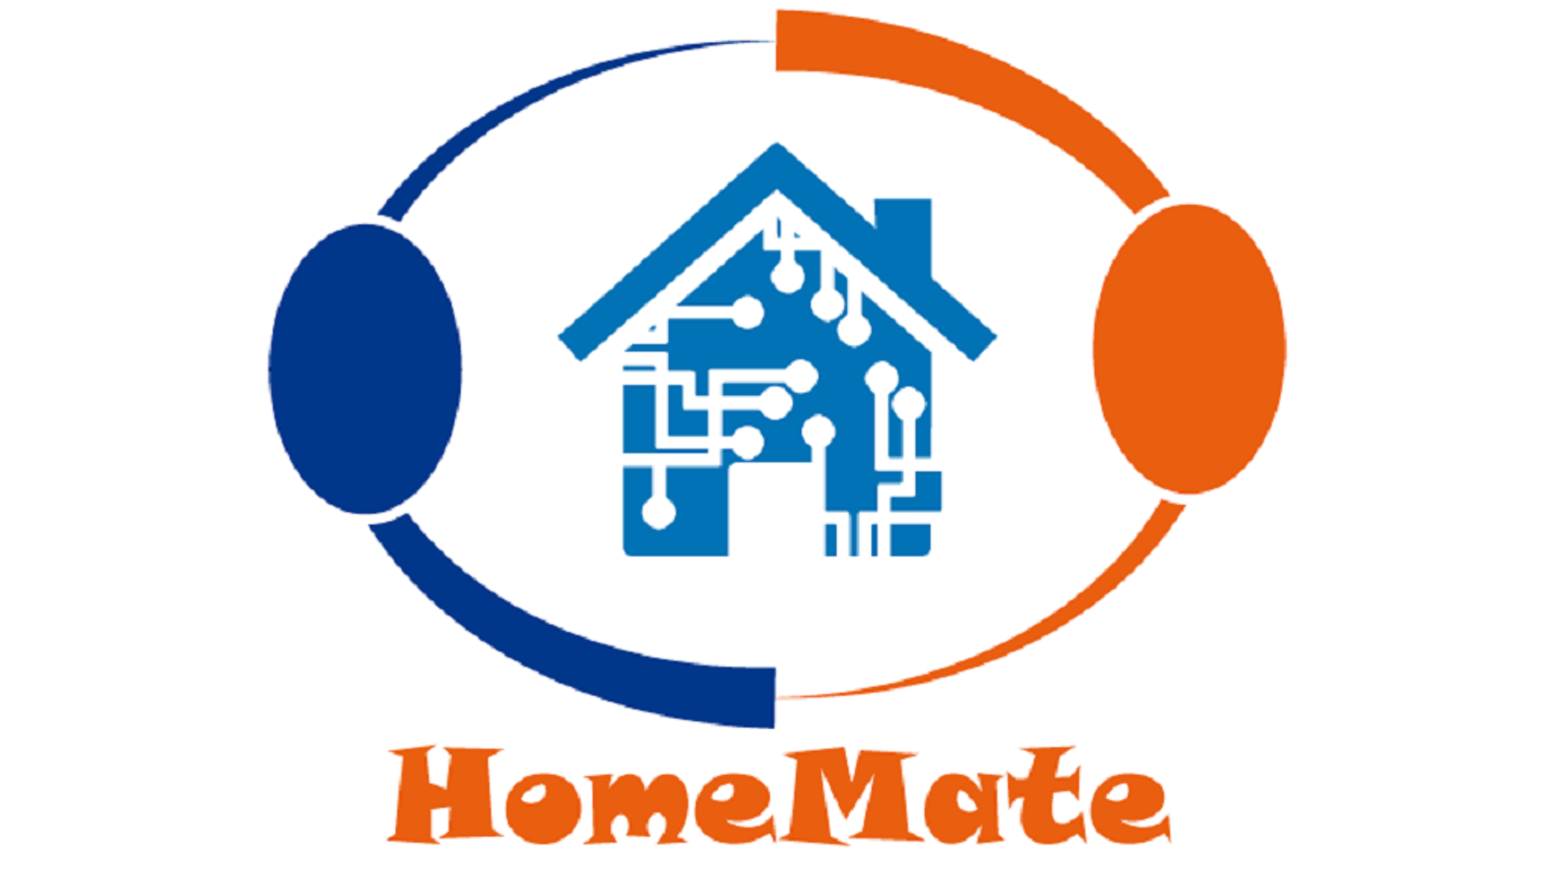 Lifetime Costs Of Autism Can Exceed 2 >> Homemate Assisted Autonomy Project For Autistic People By